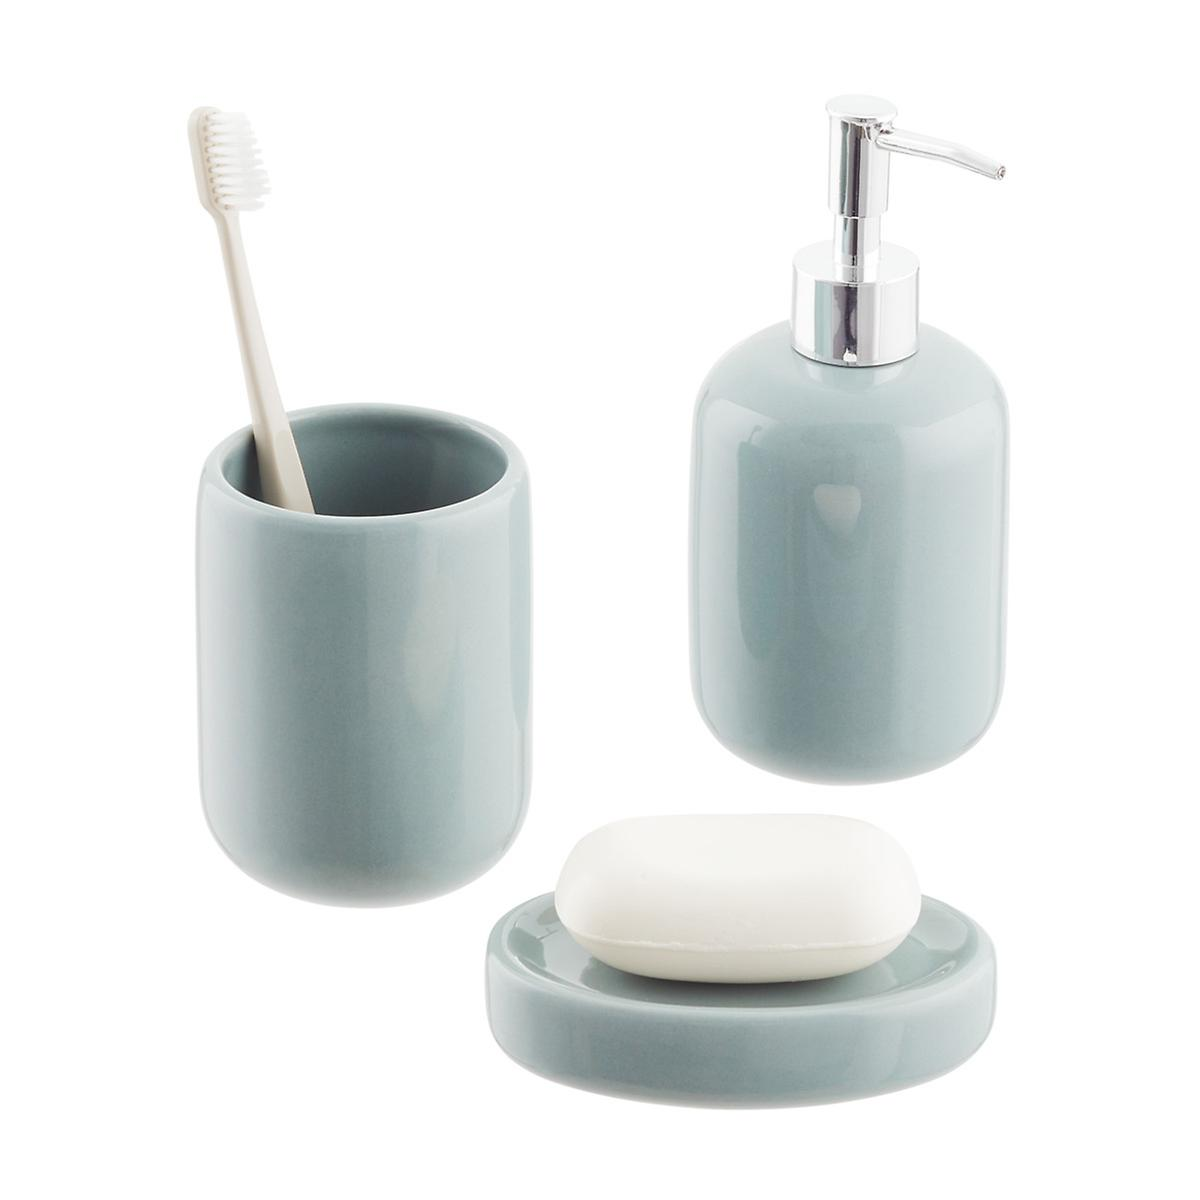 Serene Countertop Bathroom Set | The Container Store